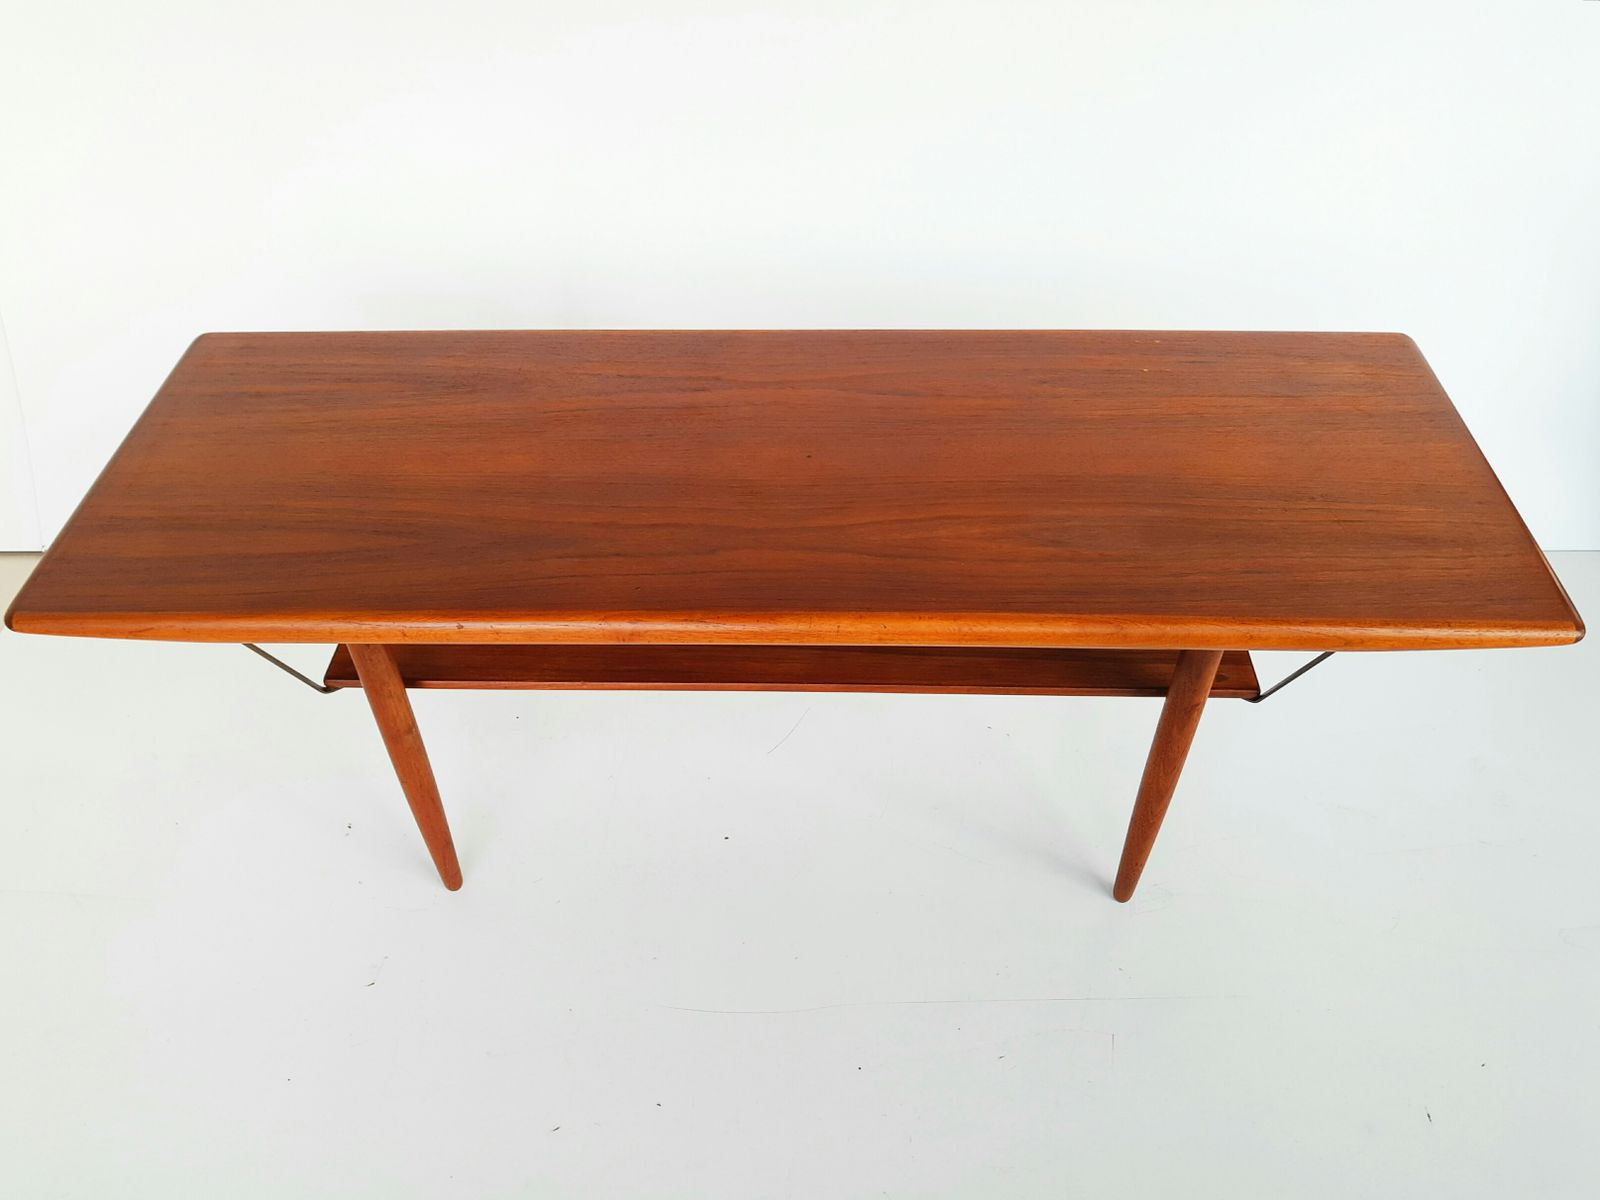 Teak Coffee Table From Arrero Mobler 1960s For Sale At Pamono